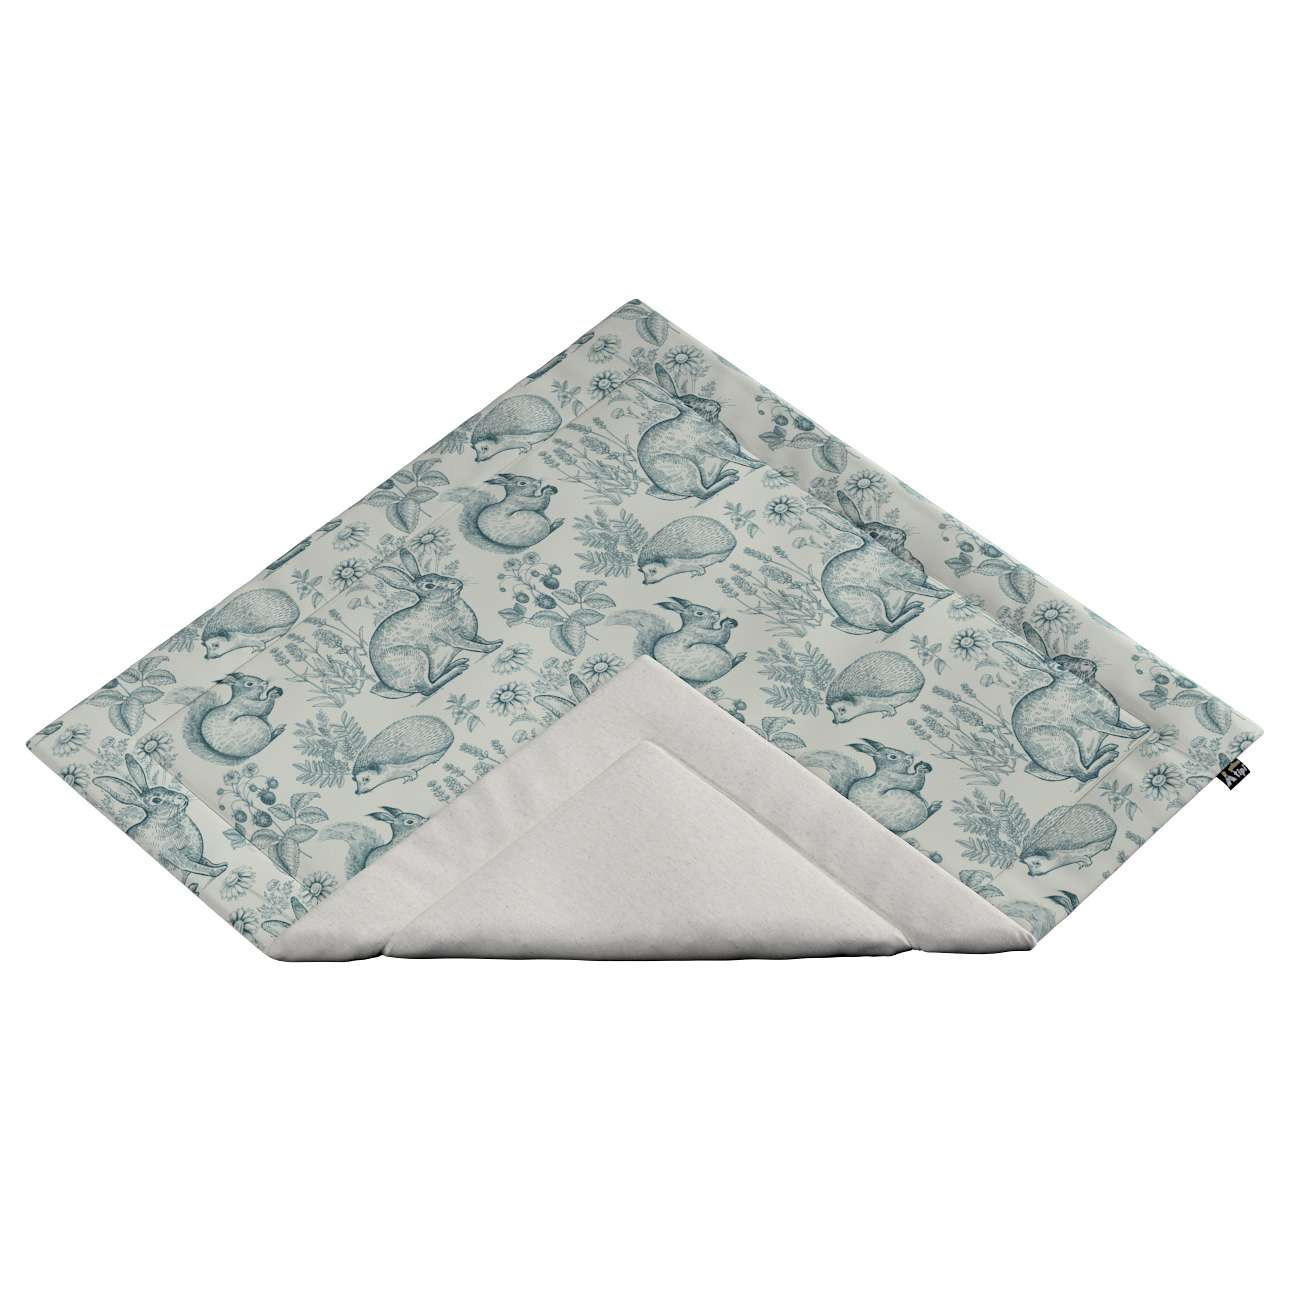 Tepee mat in collection Magic Collection, fabric: 500-04